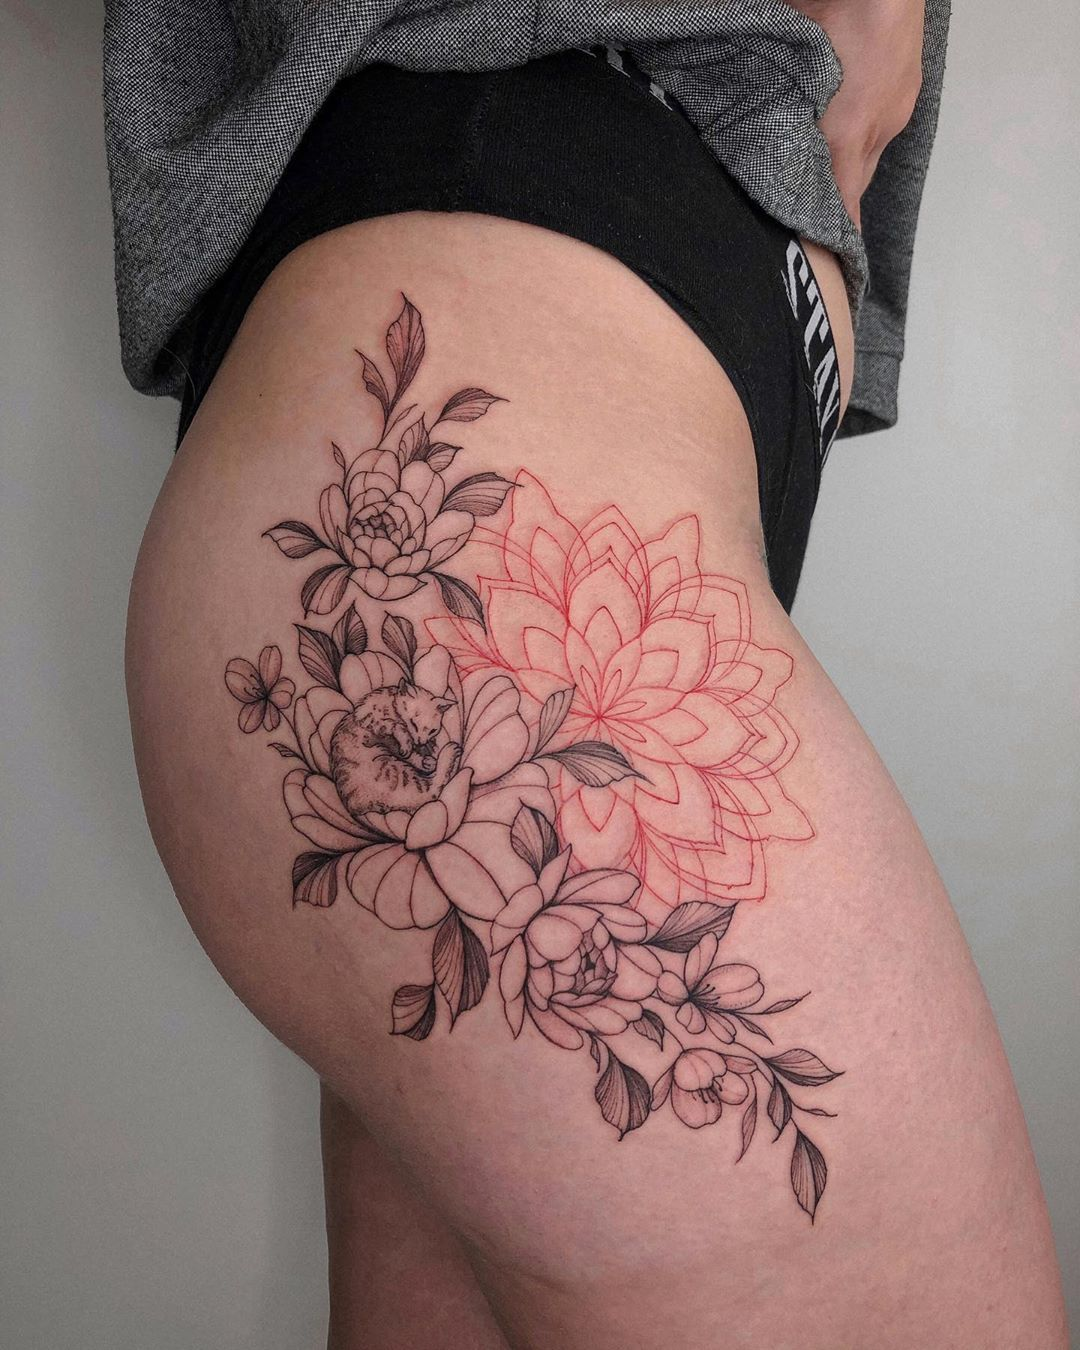 🐈🌸 ⠀ #tattoo #tattooart #graphictattoo #ink #blacktattoo #dotwork #dotworktattoo #tattooartist #tattooing #linework #art #graphic #floraltattoo